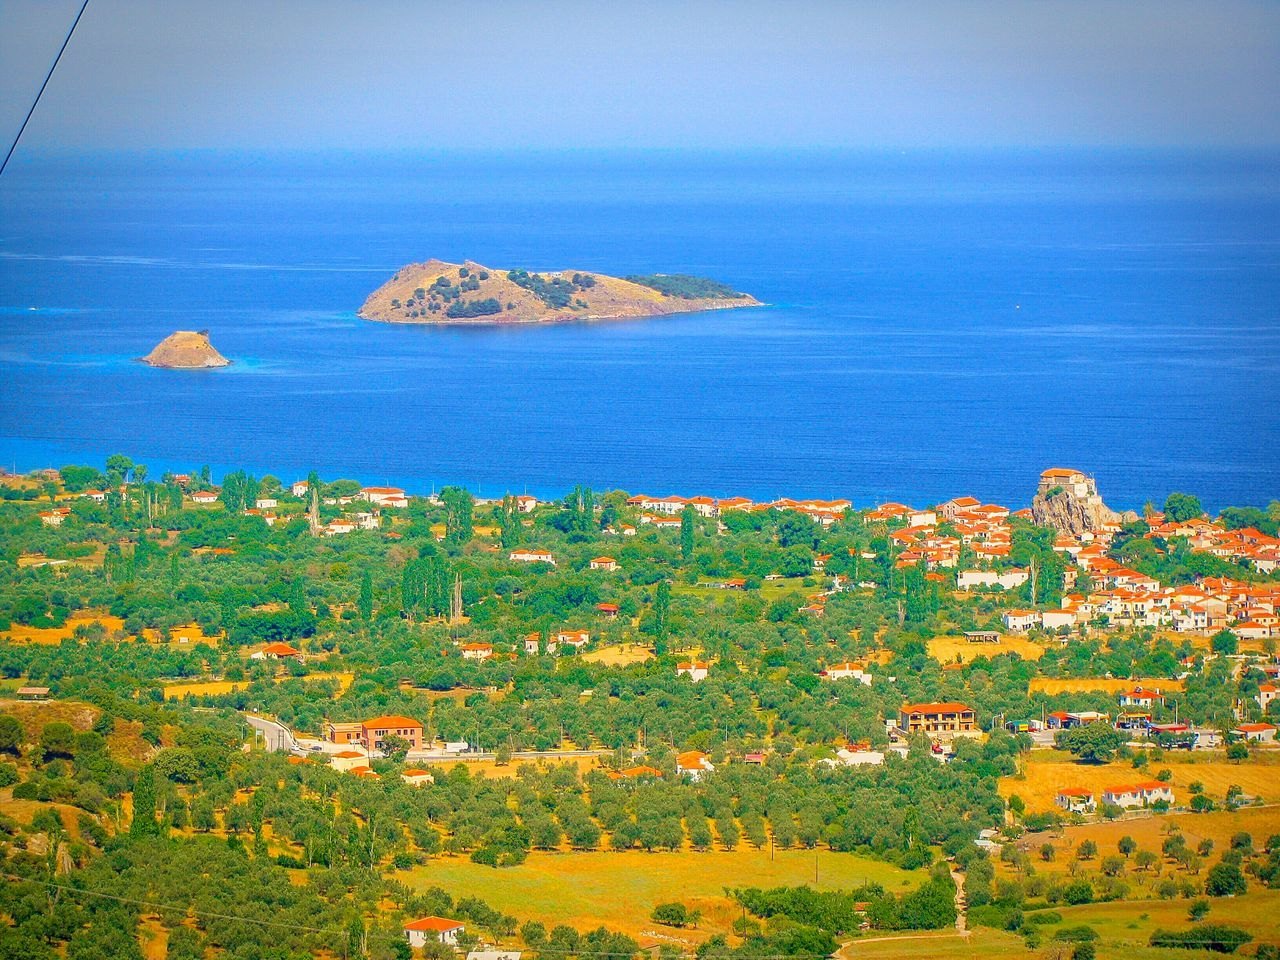 Village Sea Seaside Seaside Village Houses The Great Outdoors With Adobe A Bird's Eye View Countryside Landscape Landscapes Lesvos Island Greek Islands Petra Islets Shades Of Blue Blues Blue Sea View From Above Viewpoint View From The Top Amazing View Picturesque Blue Horizons Landscape_Collection